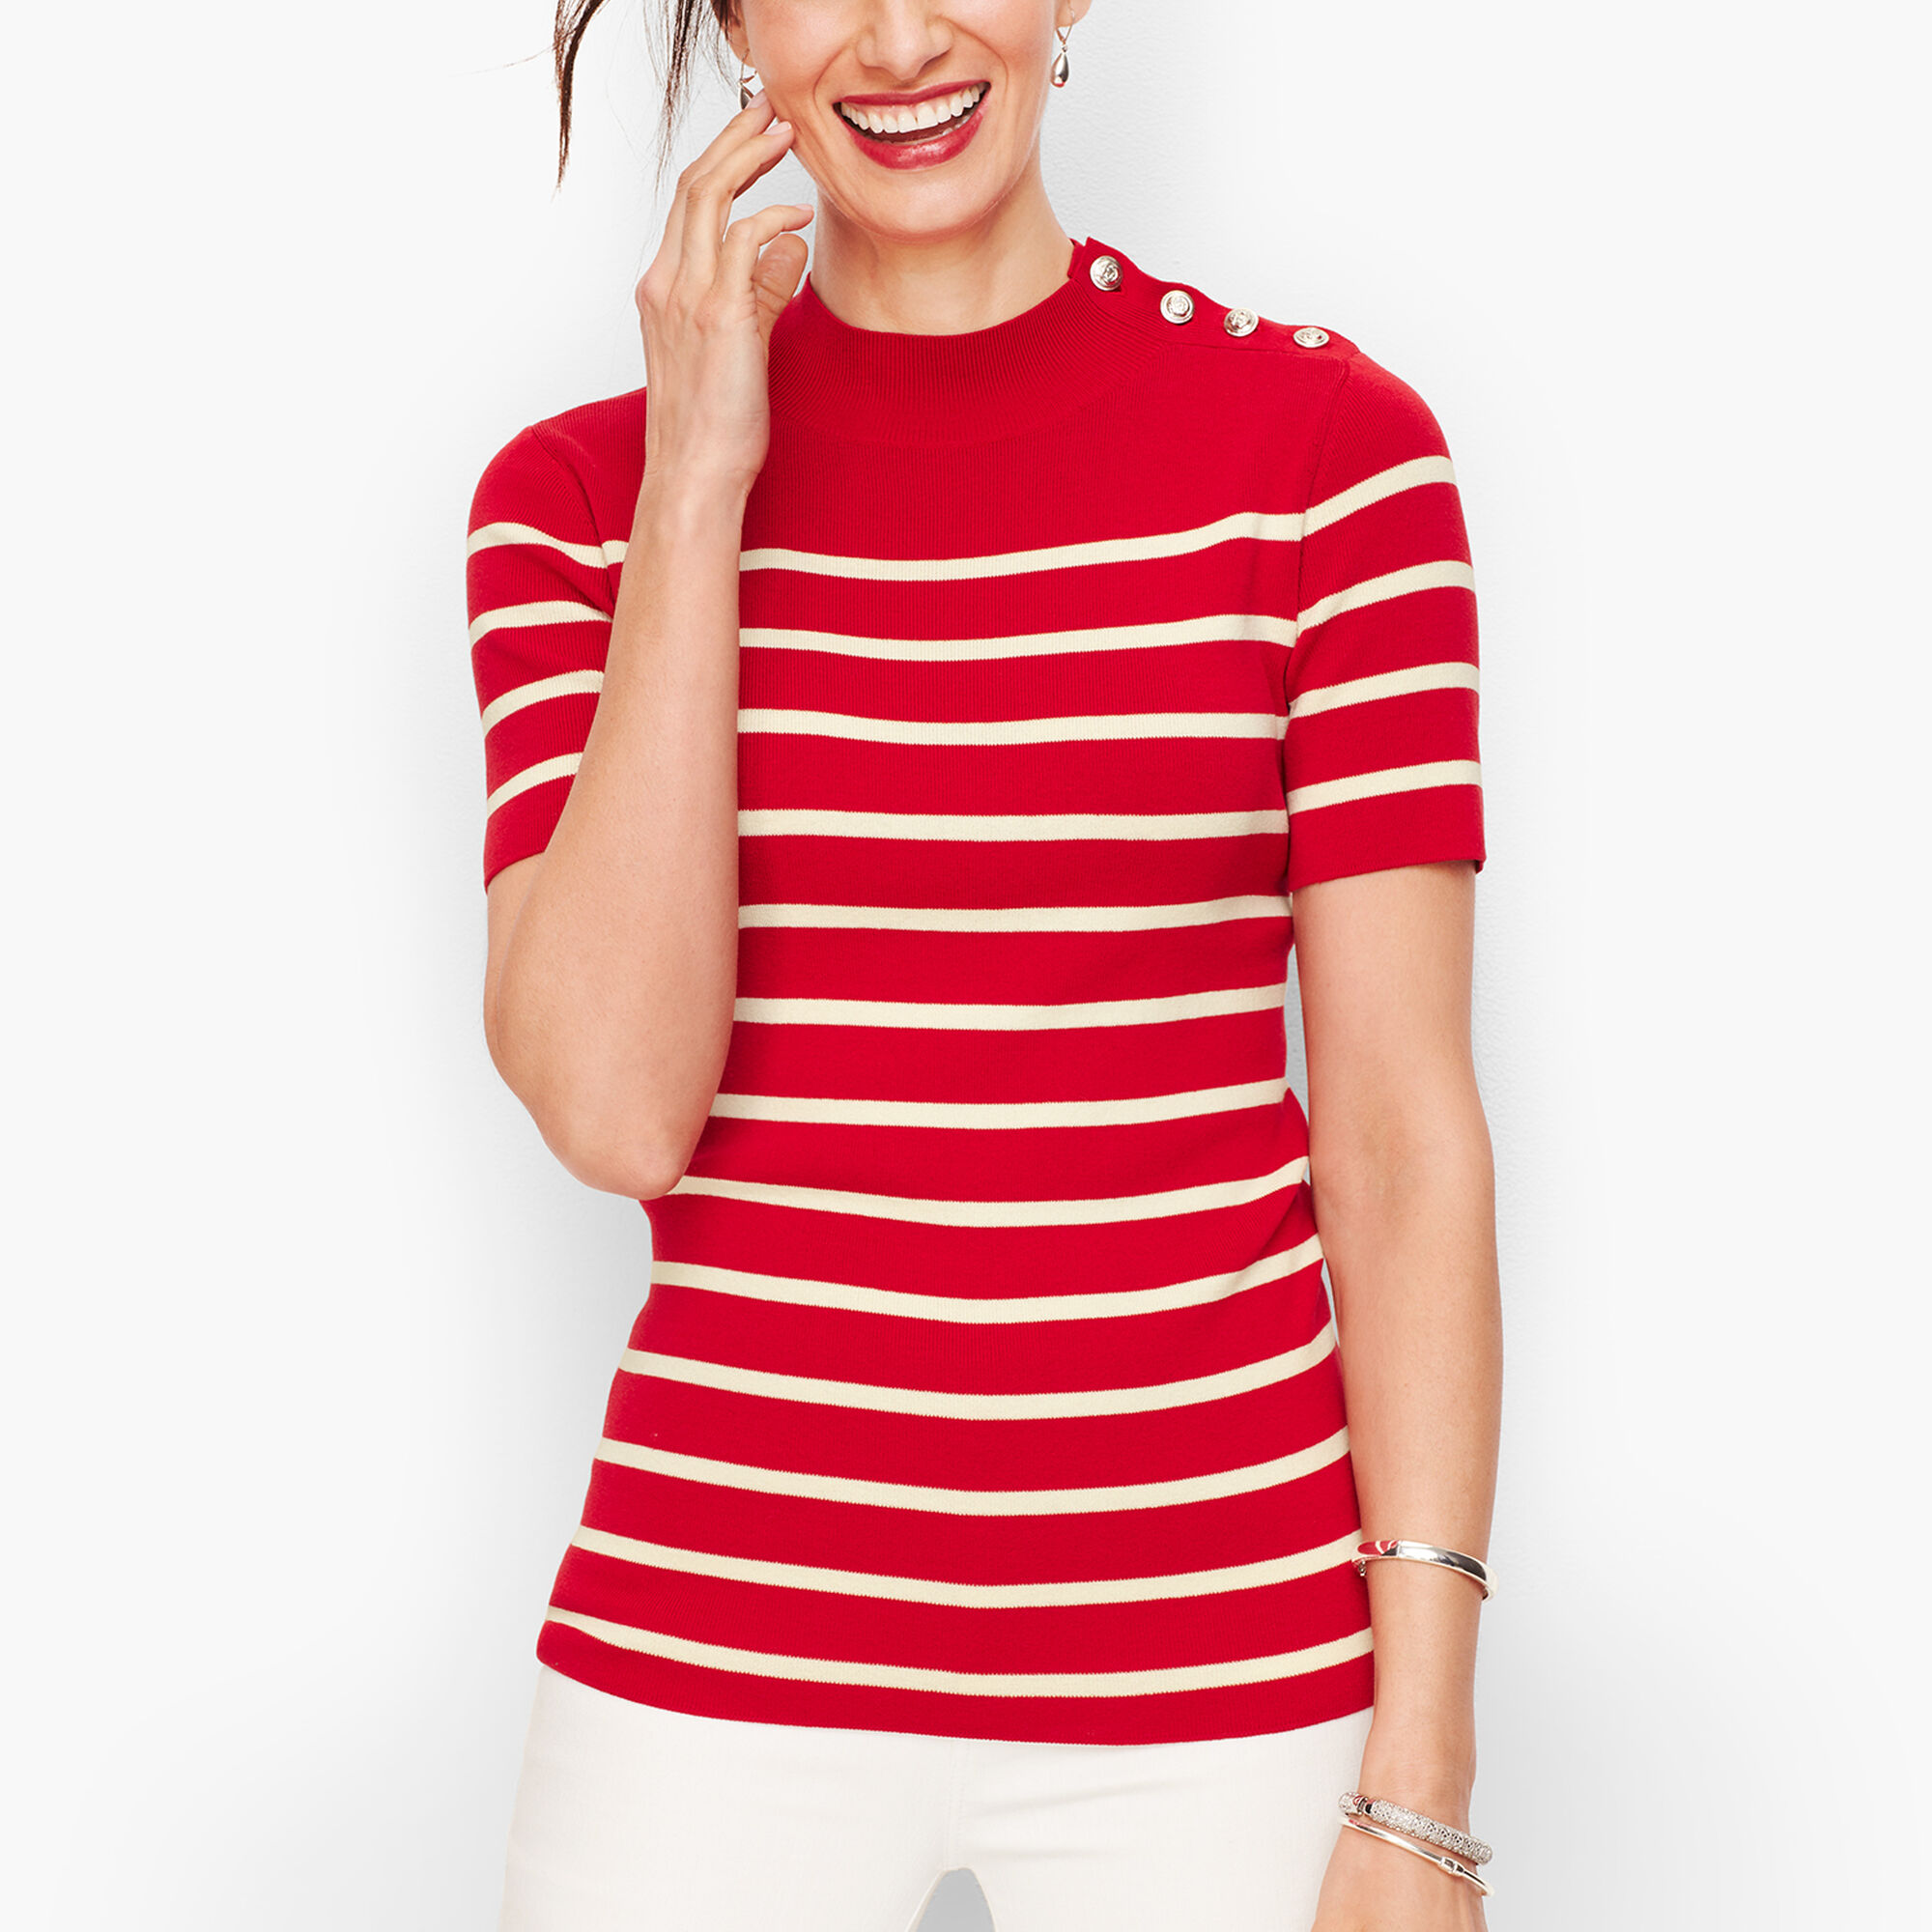 snap up this  striped sweater  for 25% off today!